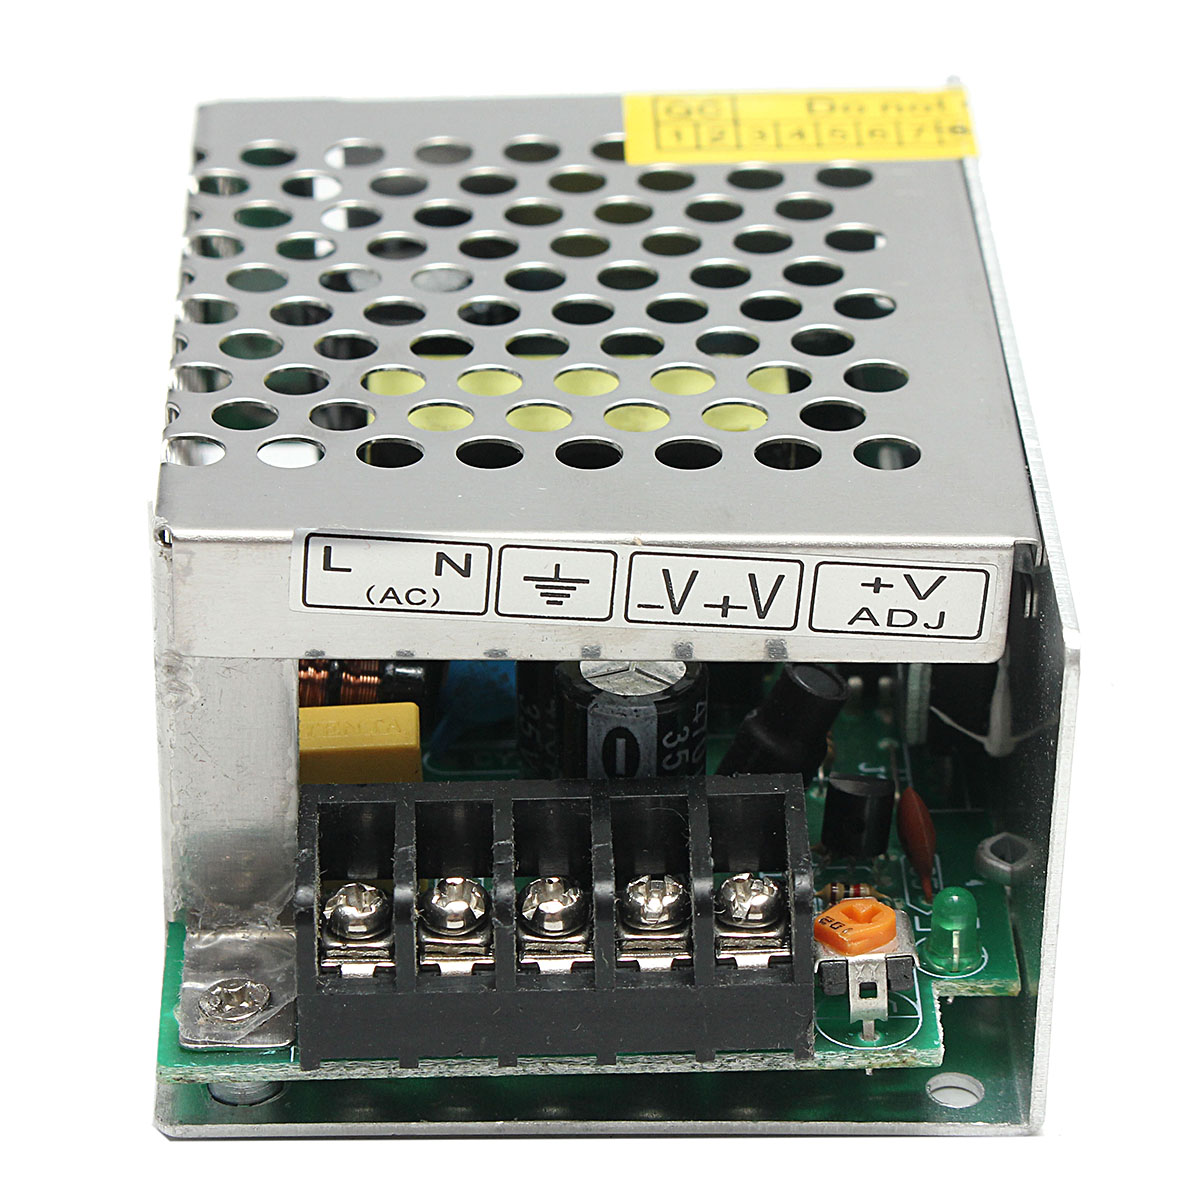 24V 1A Switching Power Supply 110-220V AC Switch Power Supply Transformer for Mechanic Engineer